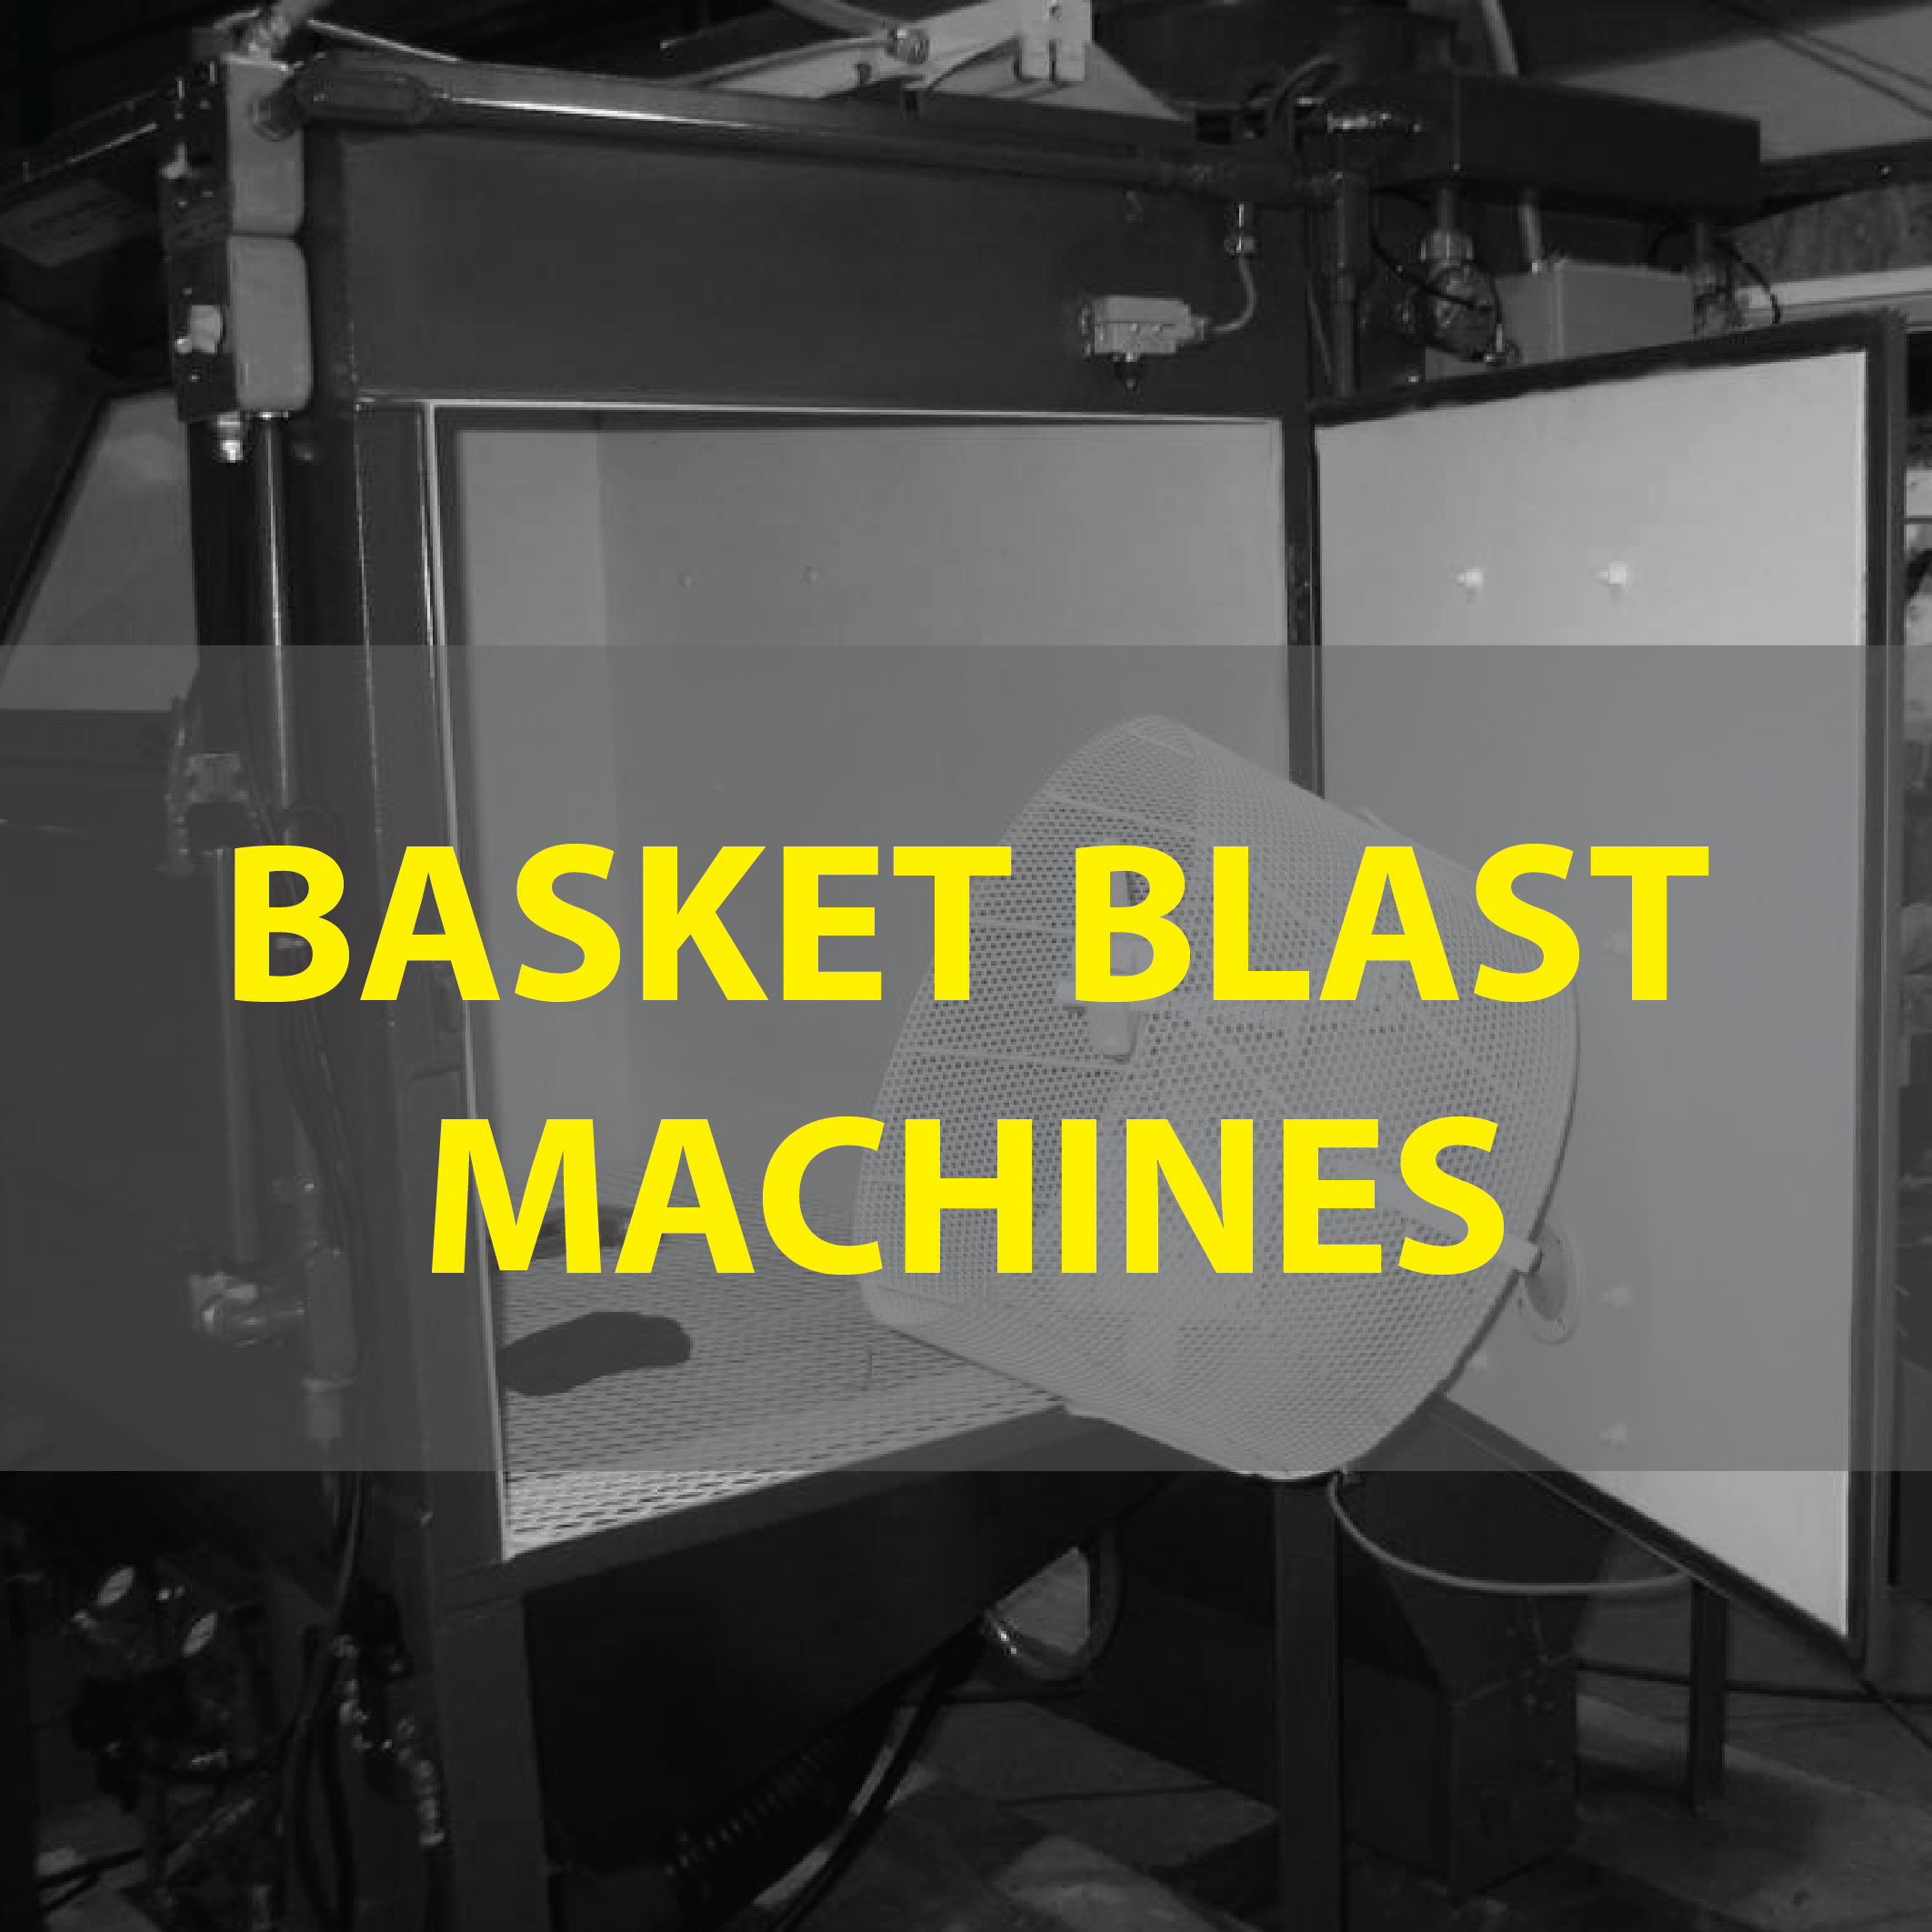 Abrasive Blast Cabinet Tumble Blast Equipment Abrasive Blast Systems Abs